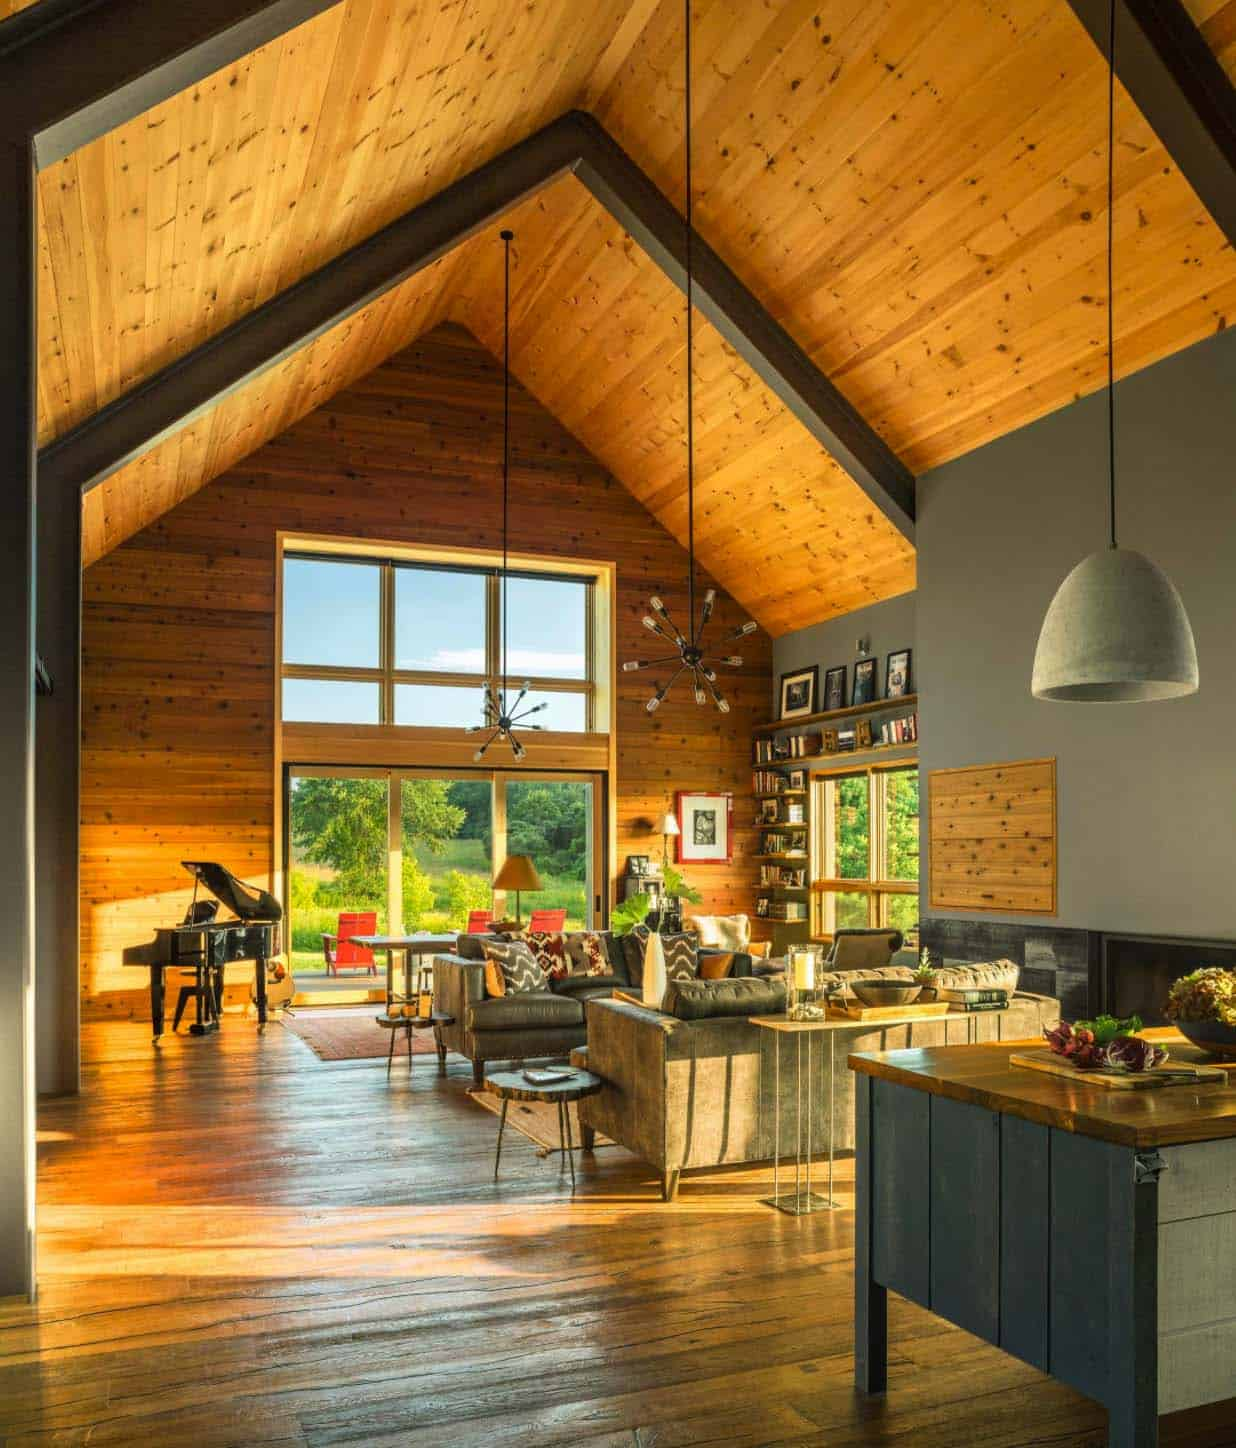 Modern Tiny House Interior: Small And Cozy Modern Barn House Getaway In Vermont